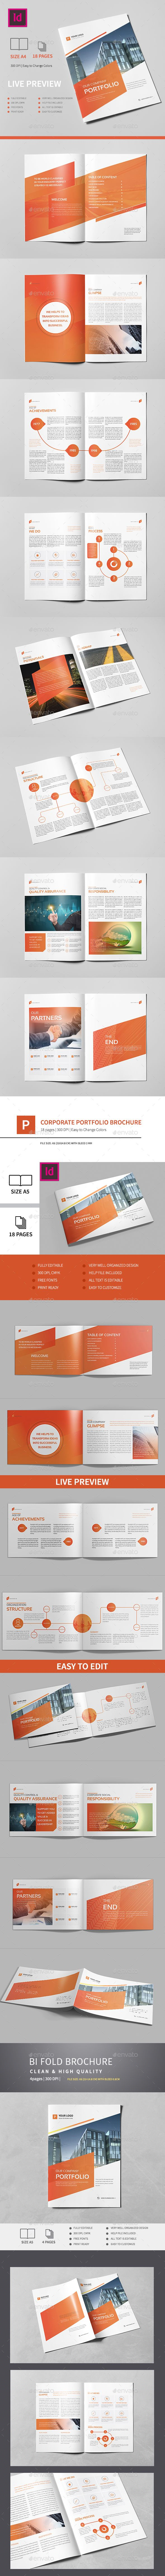 3 High Quality InDesign Brochure Templates • Download ➝ https ...